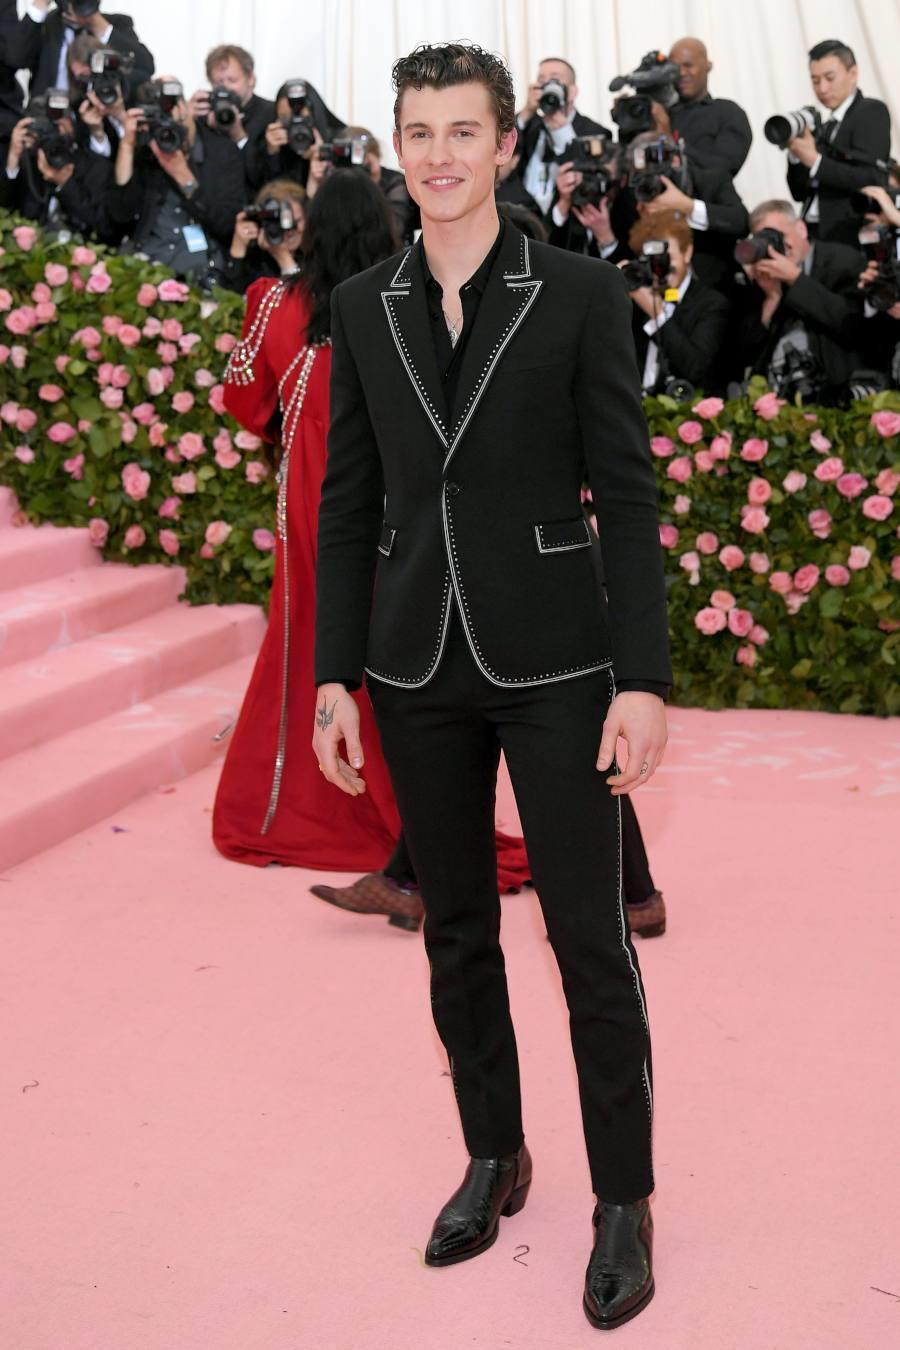 Shawn Mendes in Saint Laurent by Anthony Vaccarello - Met Gala 2019 (1). Shawn Mendes de Saint Laurent